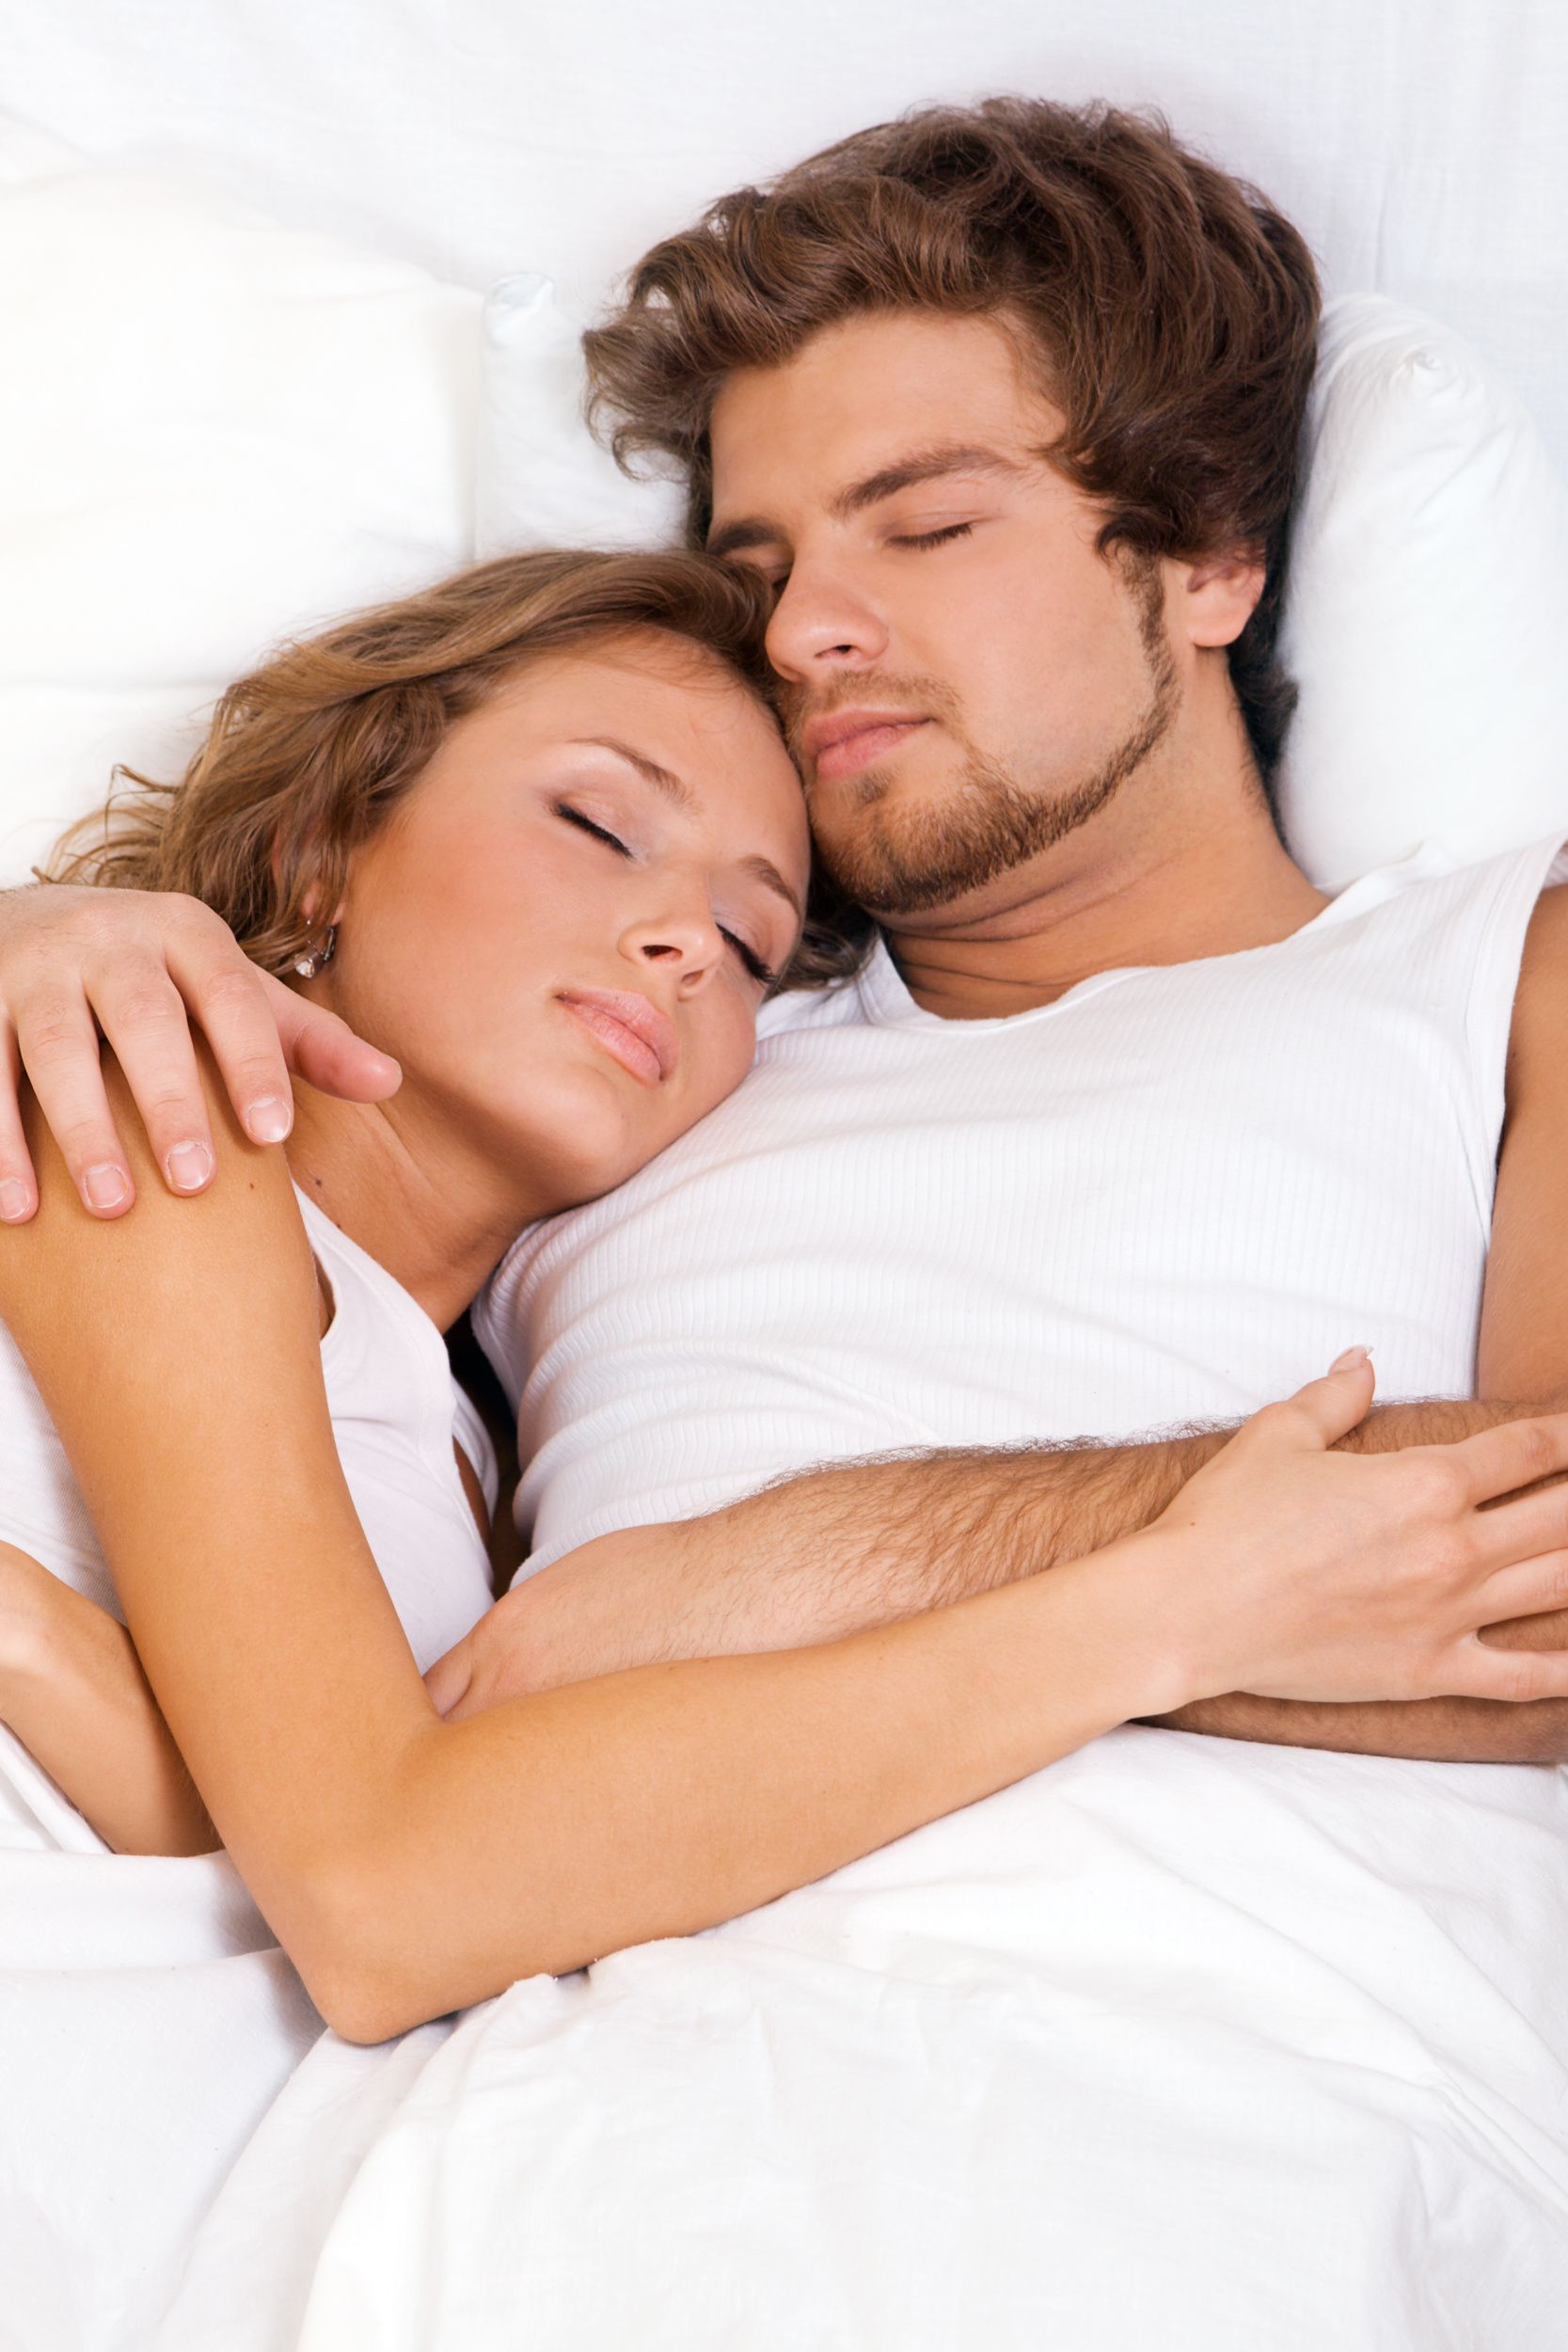 The sleeping position determines your relationship ...